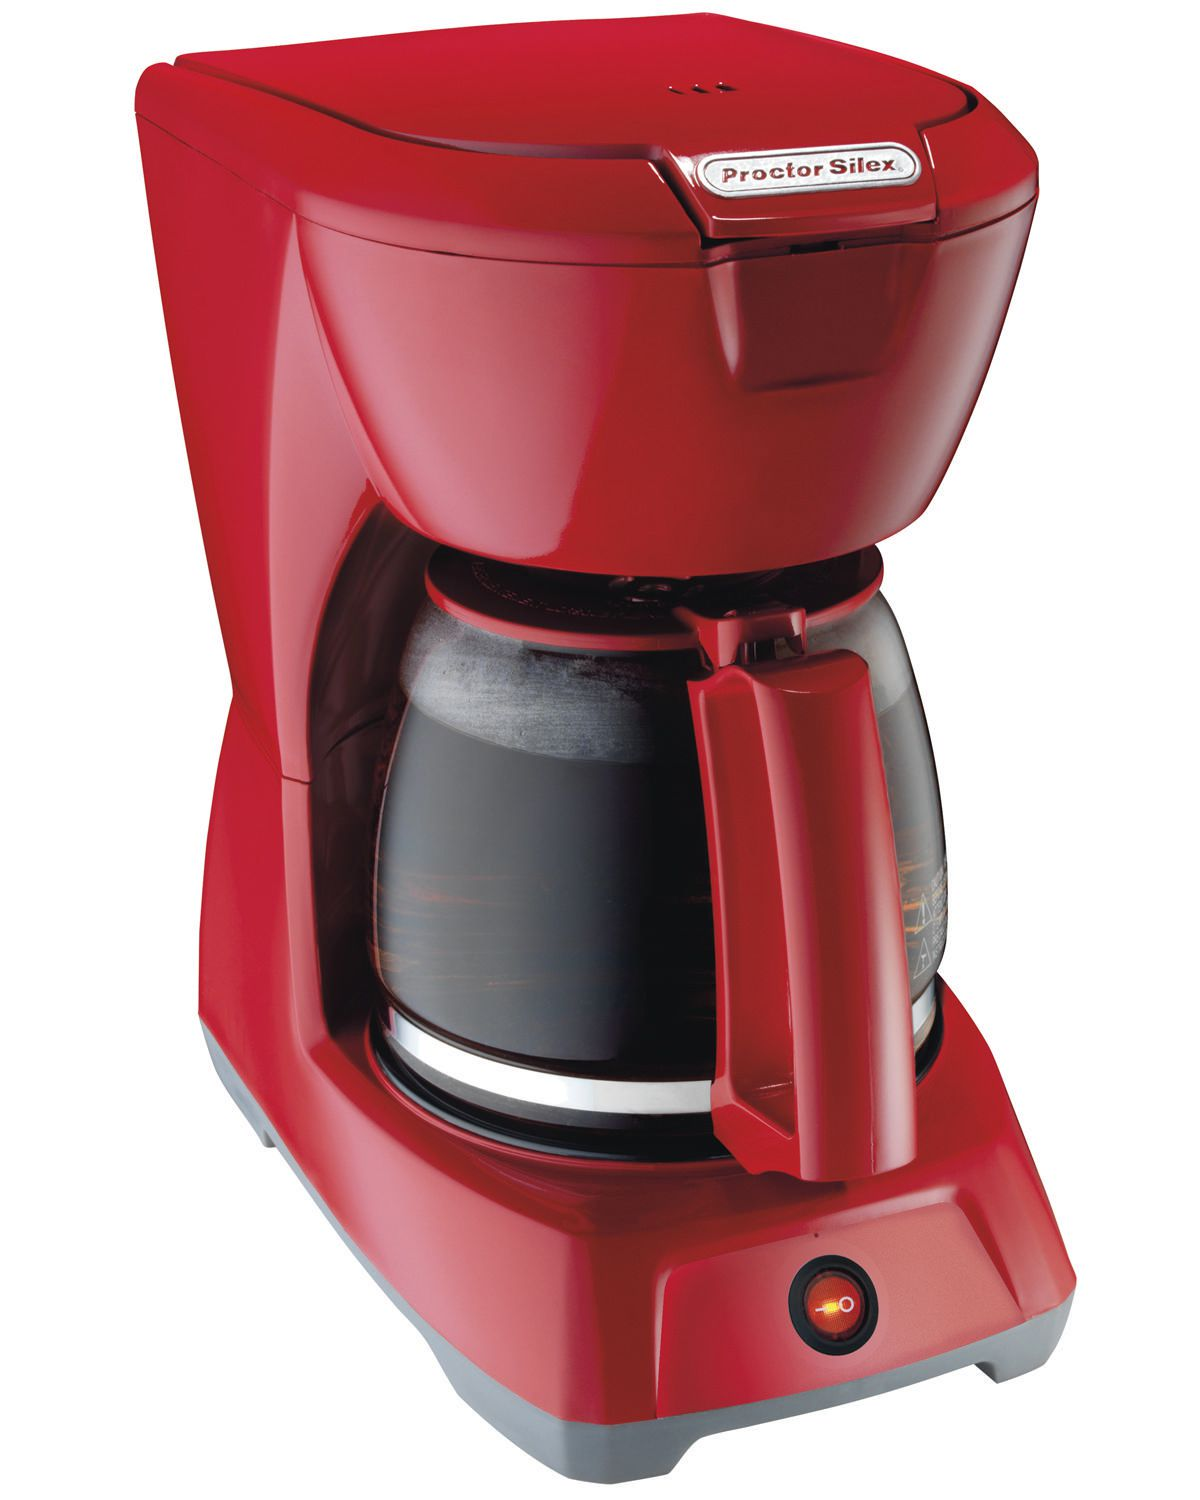 Electronic Where To Buy Coffee Machine buy coffee makers online walmart canada proctor silex 12 cup maker 43603